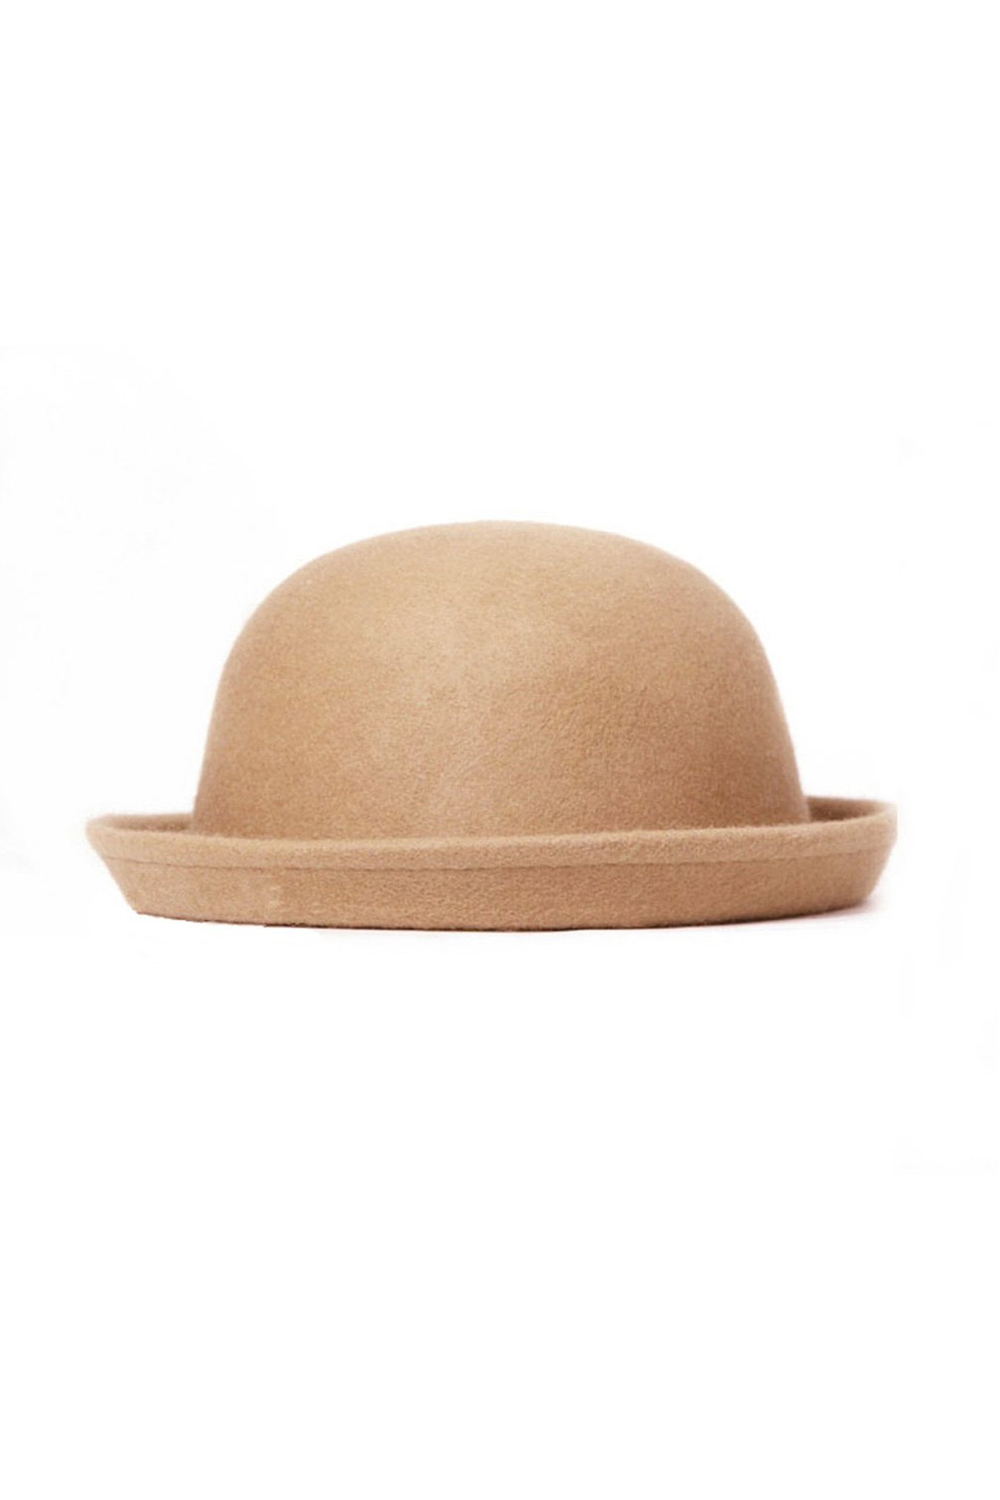 Aliexpress.com   Buy Fashion Vintage Women Fedoras Dome Hat Roll Brim Bowler  Derby Hat Headwear Light tan from Reliable fashion fedora suppliers on Well  ... dc220c39e54